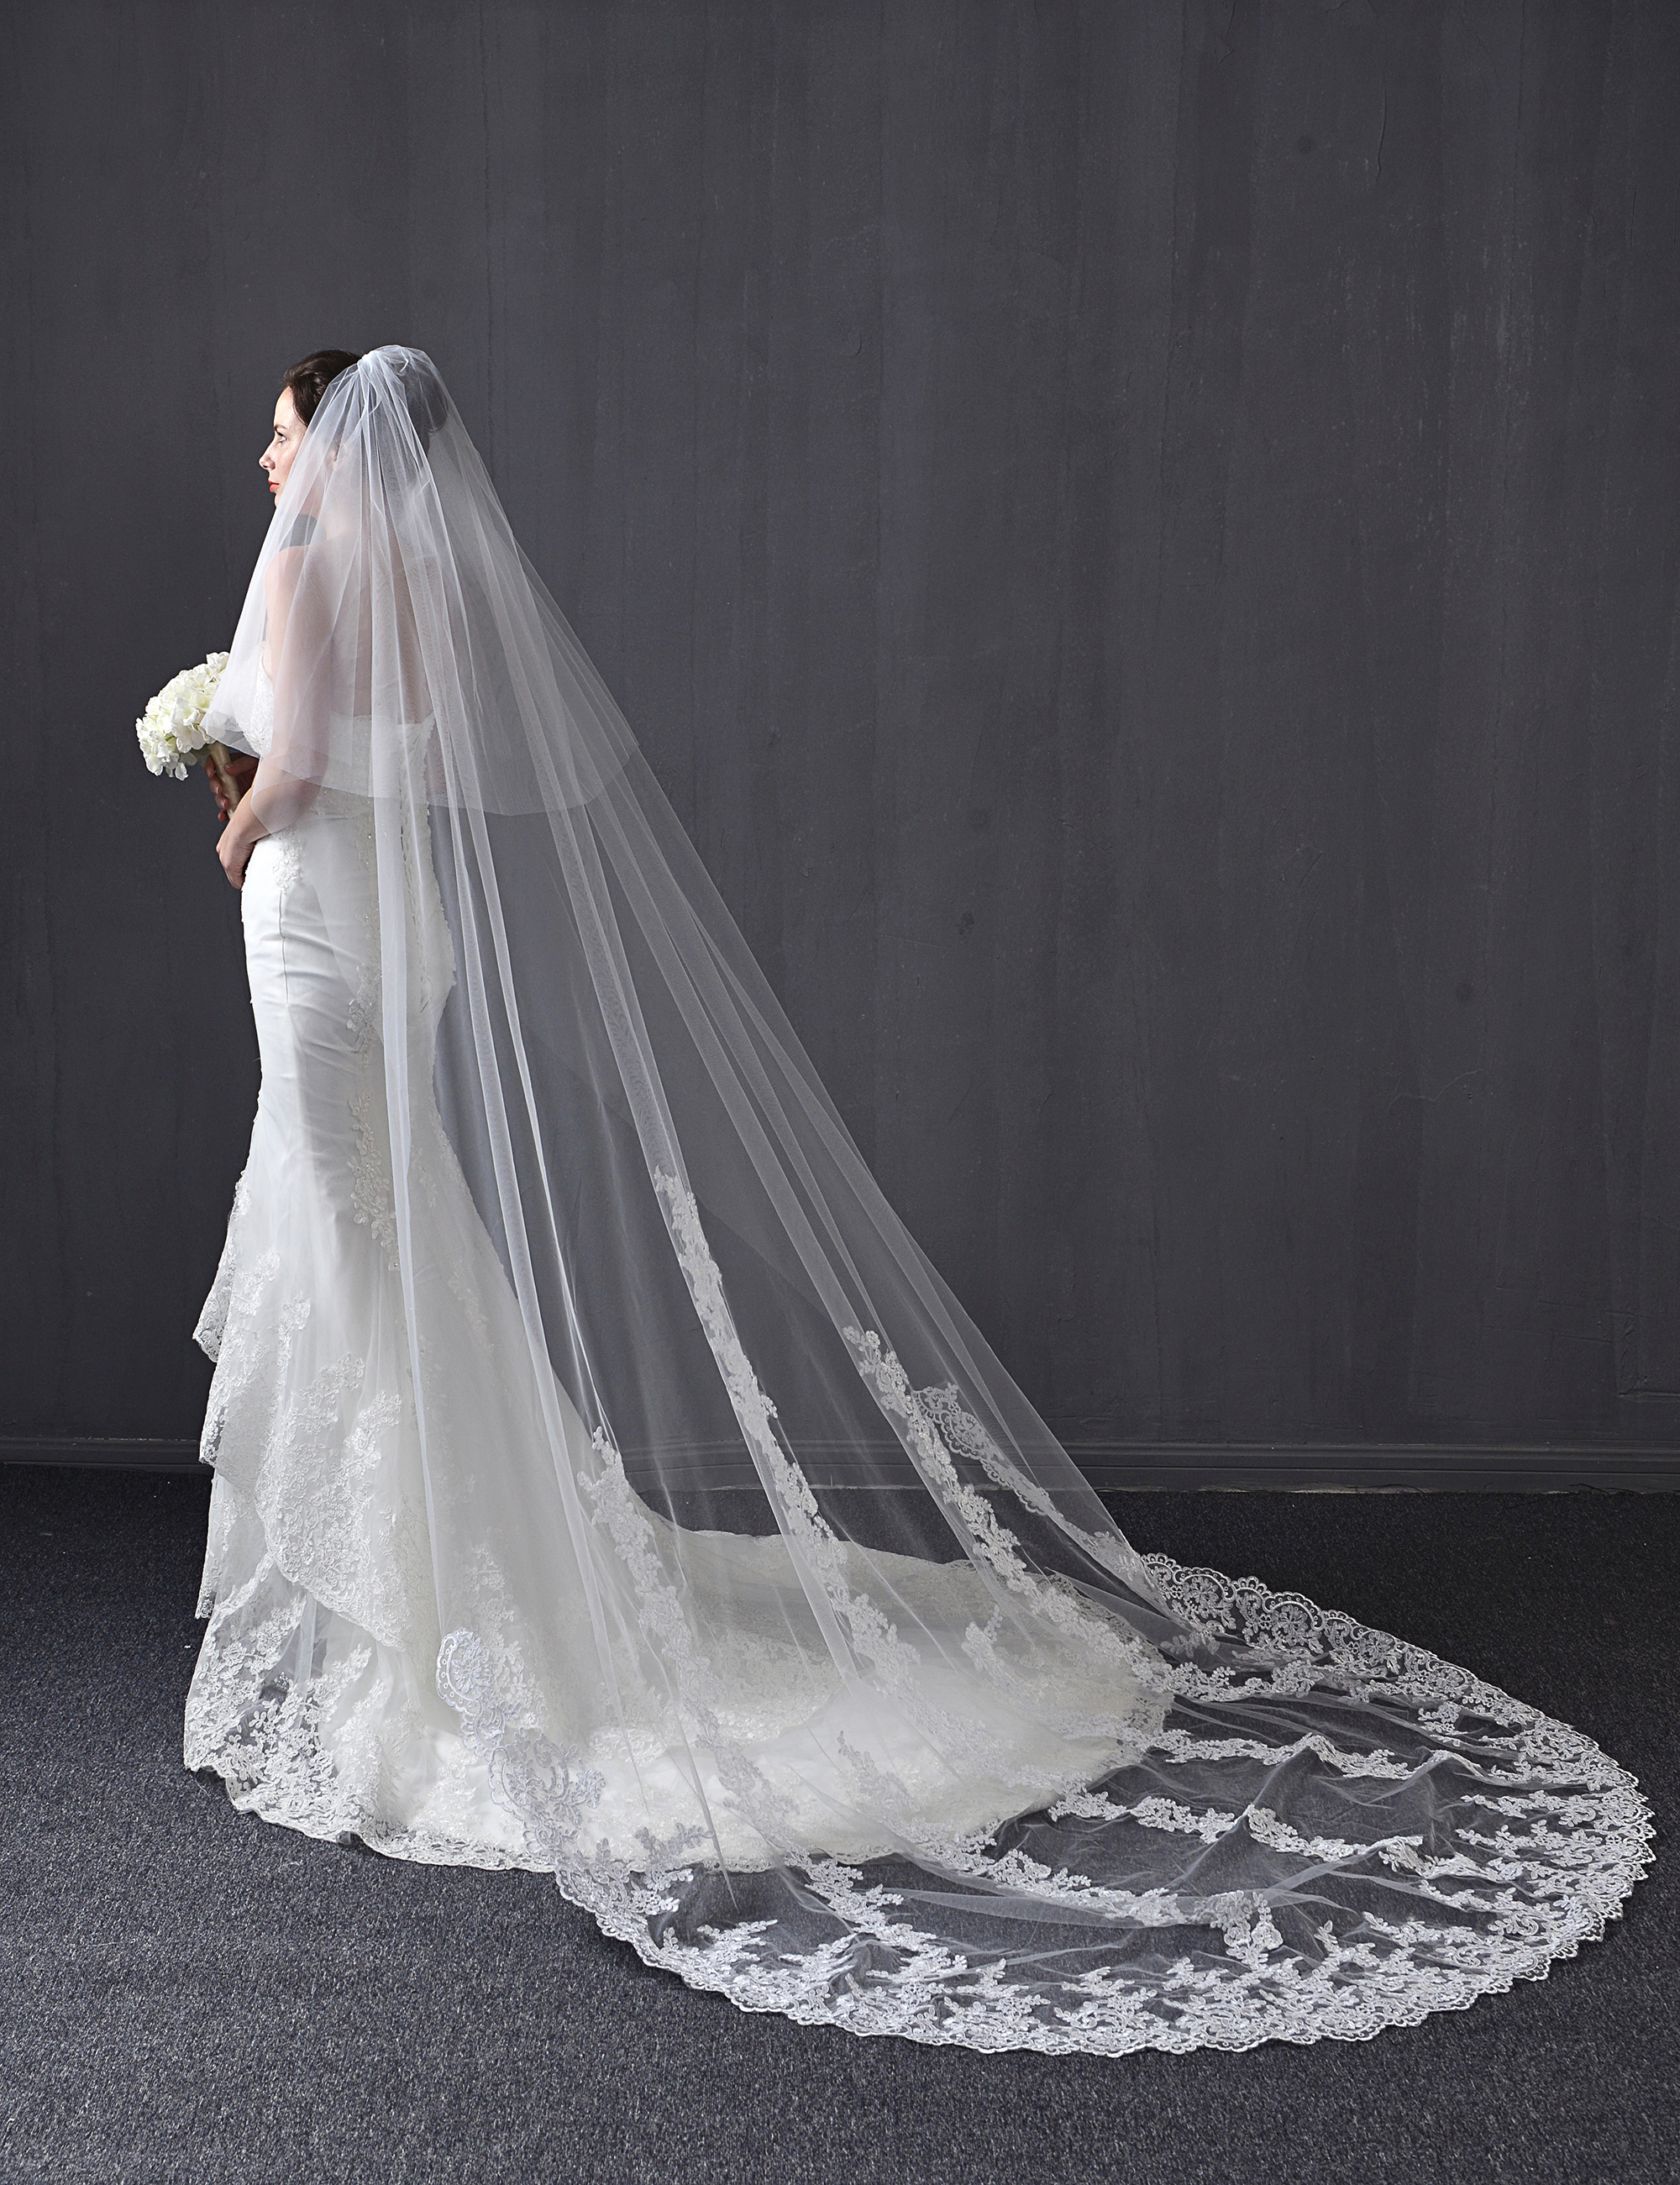 3 M Two Tiers Lace Wedding Veils Lace Sequin Wedding Veils Cathedral Veils White Ivory